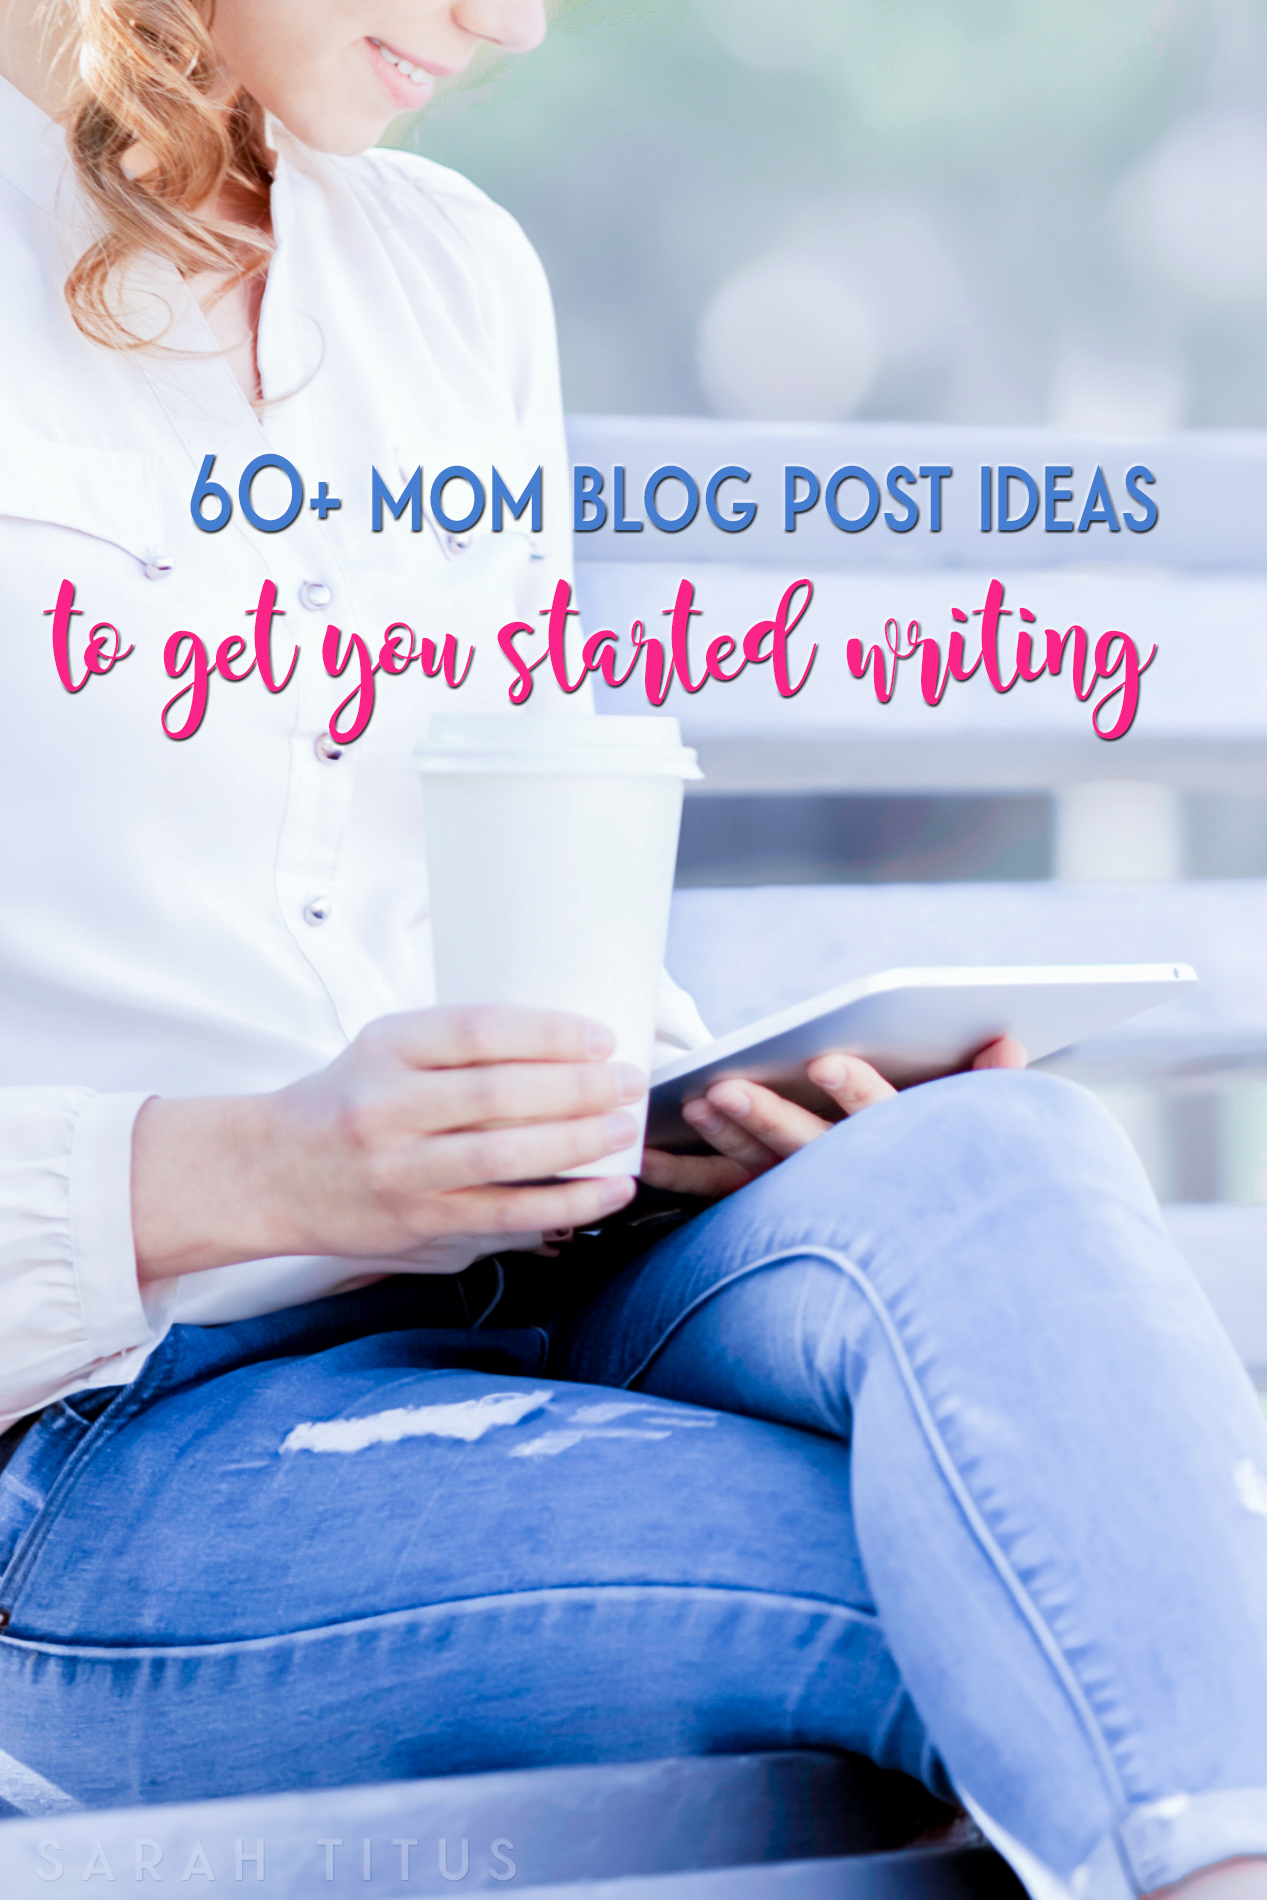 60+ Mom Blog Post Ideas To Get You Started Writing